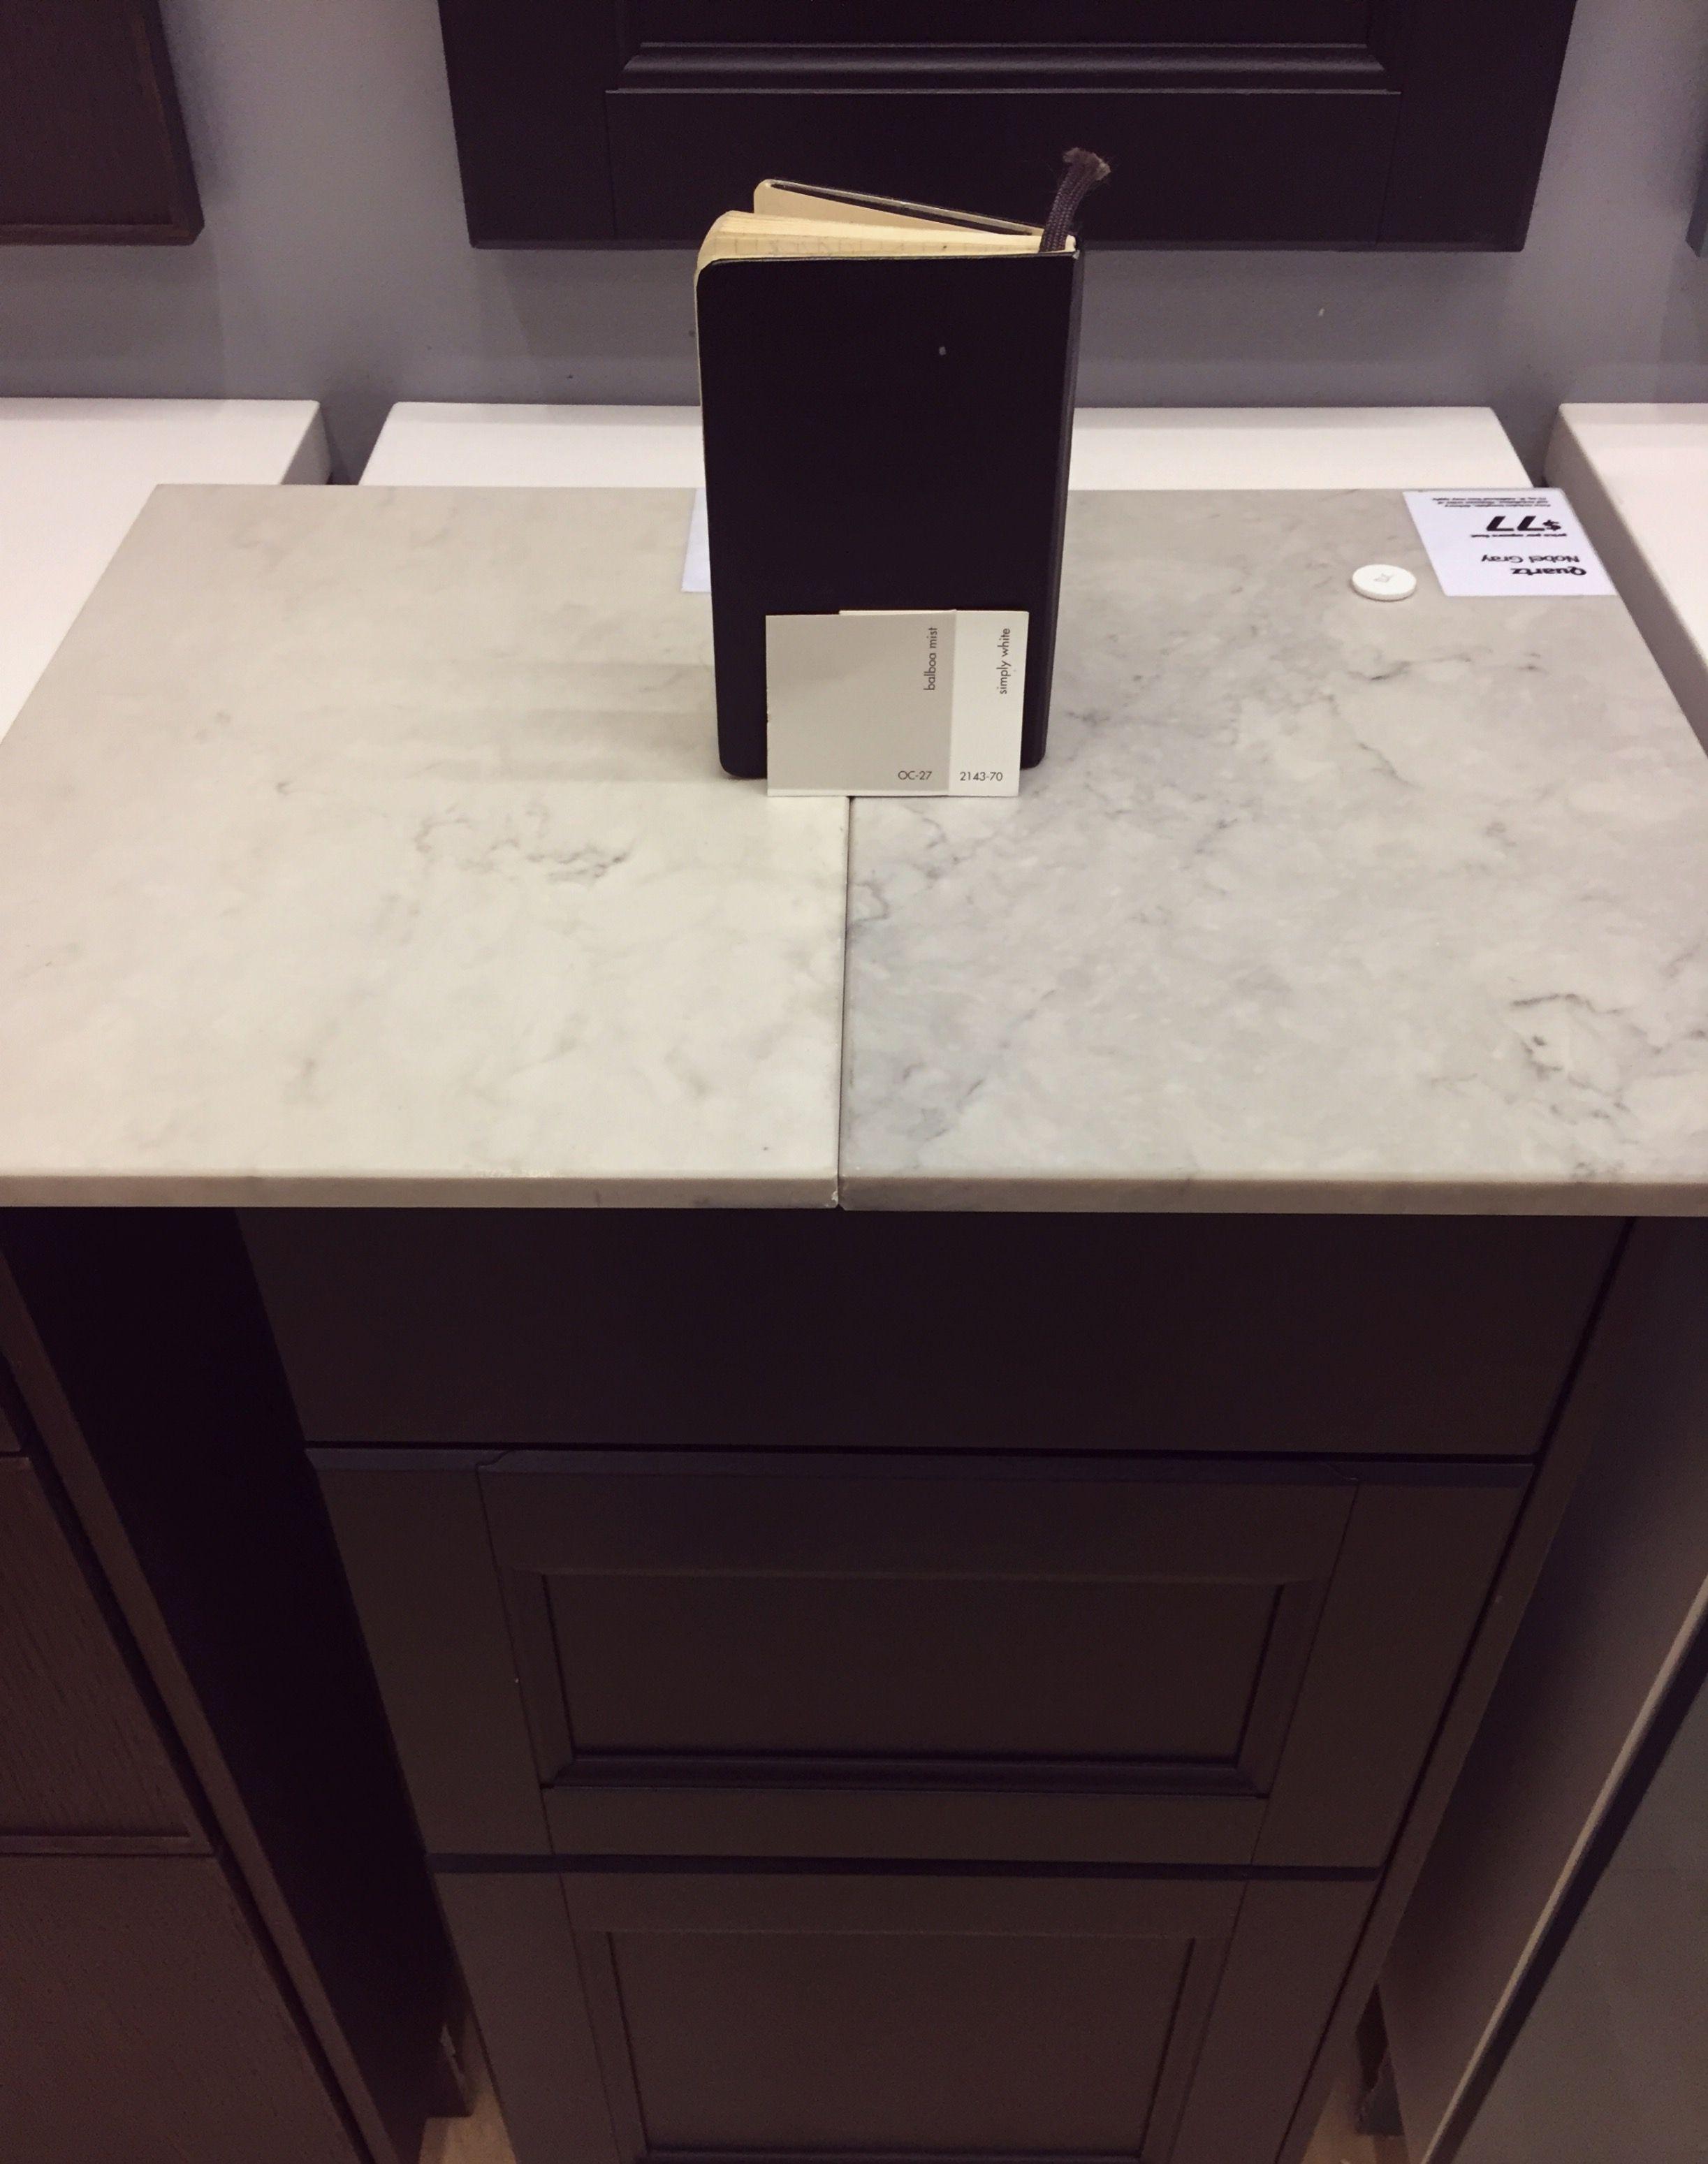 Caesarstone Countertop Options At Ikea London Grey Vs Nobel Grey